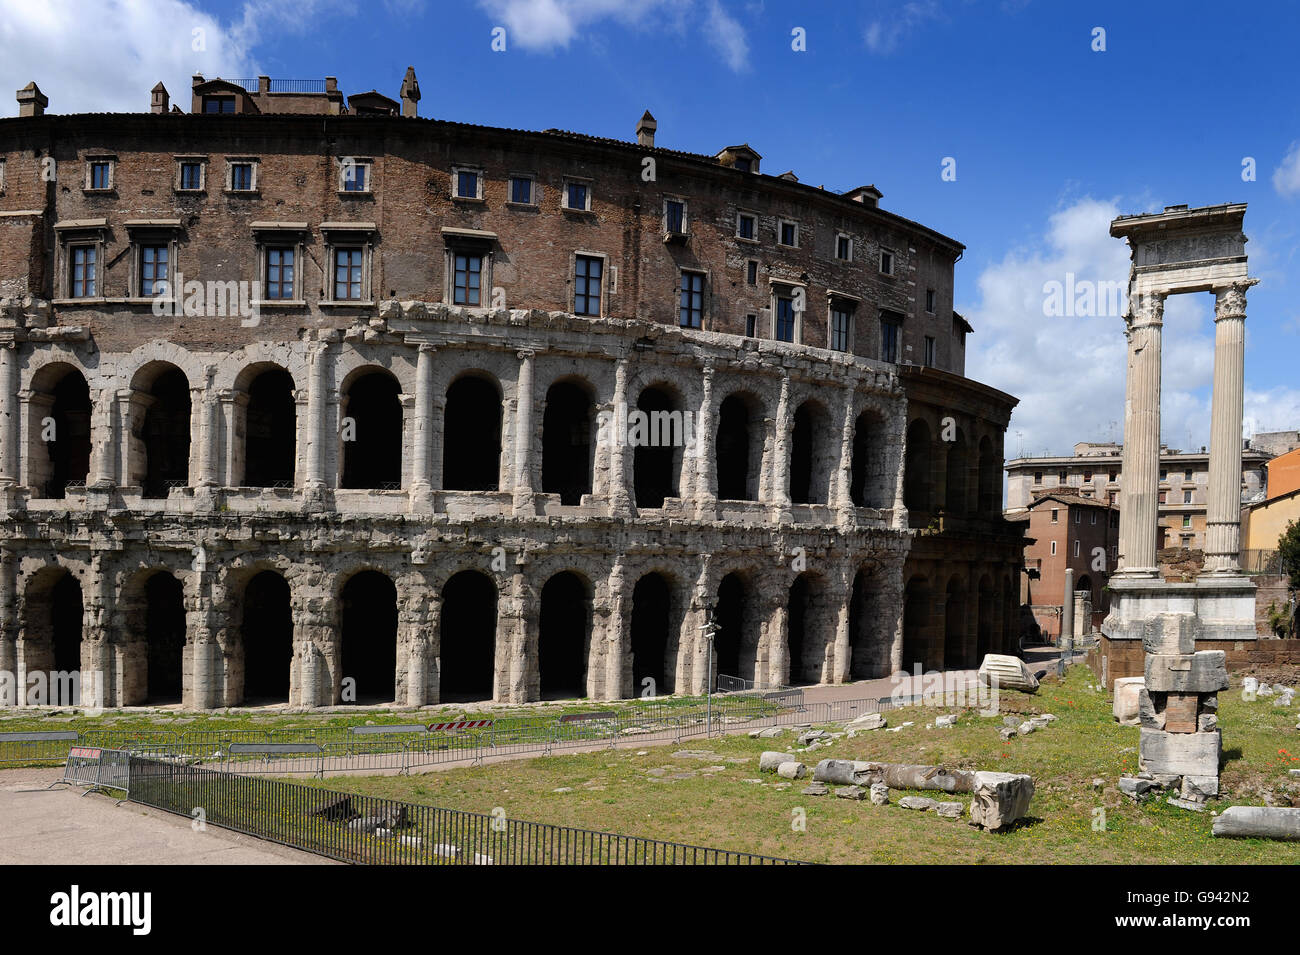 Rome, Italy. Theatre of Marcellus. Picture by Paul Heyes, Wednesday June 01, 2016. Rome, Italy. - Stock Image